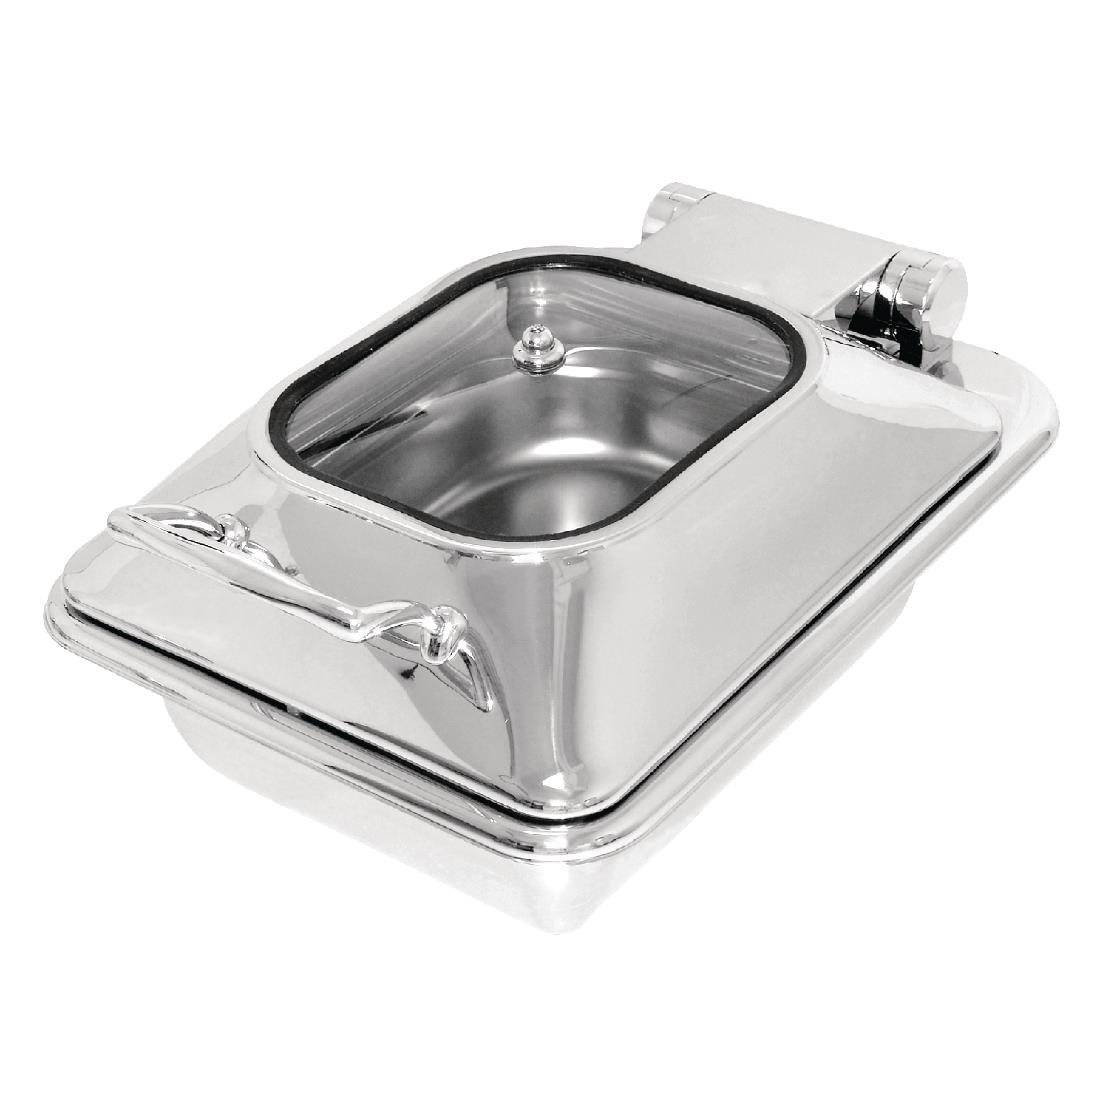 olympia induction chafer 12 glass lid